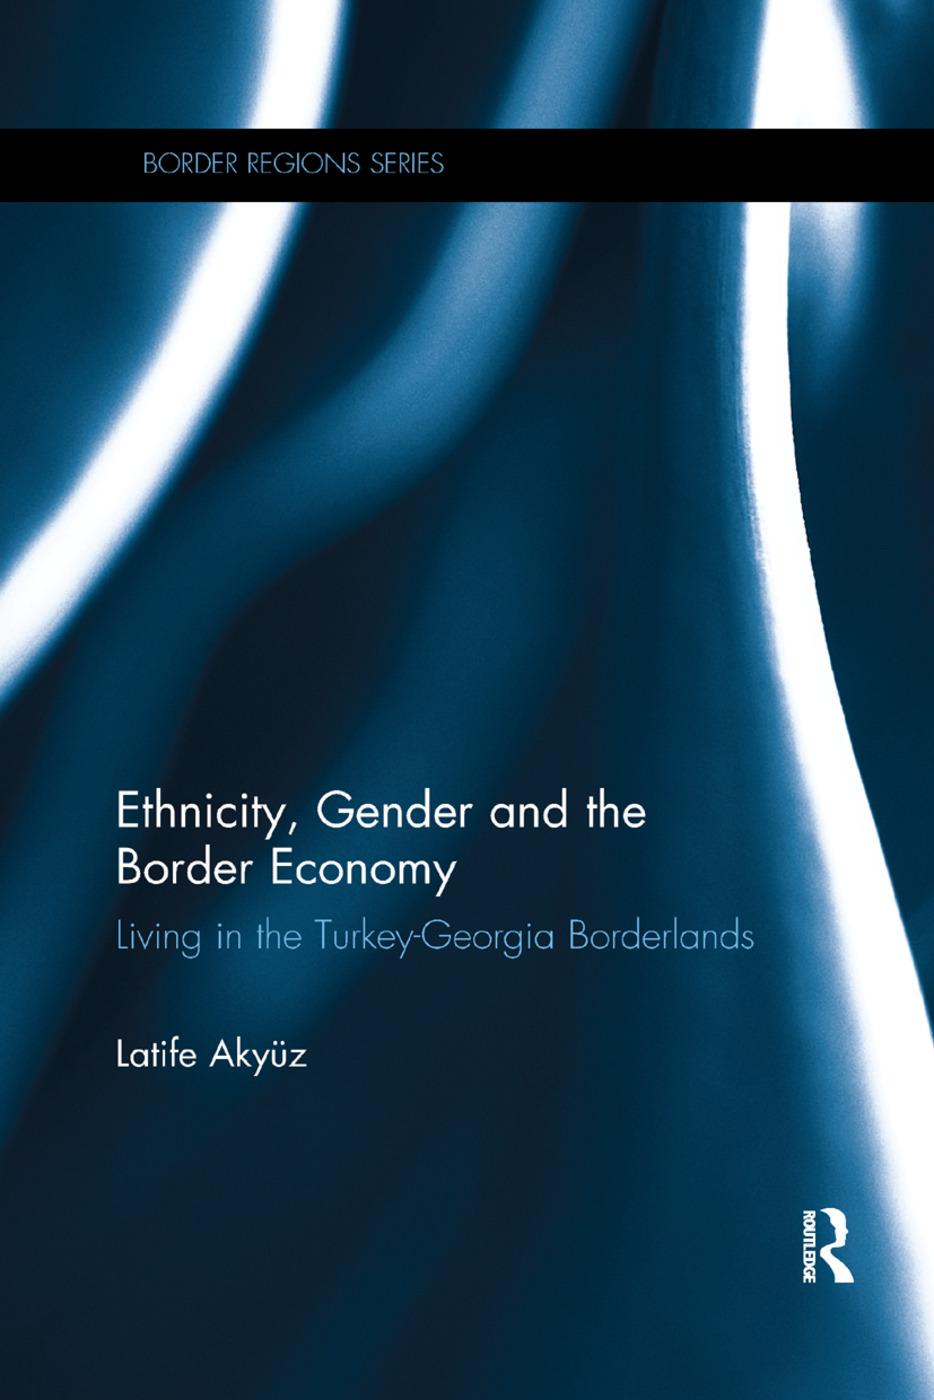 Ethnicity, Gender and the Border Economy: Living in the Turkey-Georgia Borderlands book cover